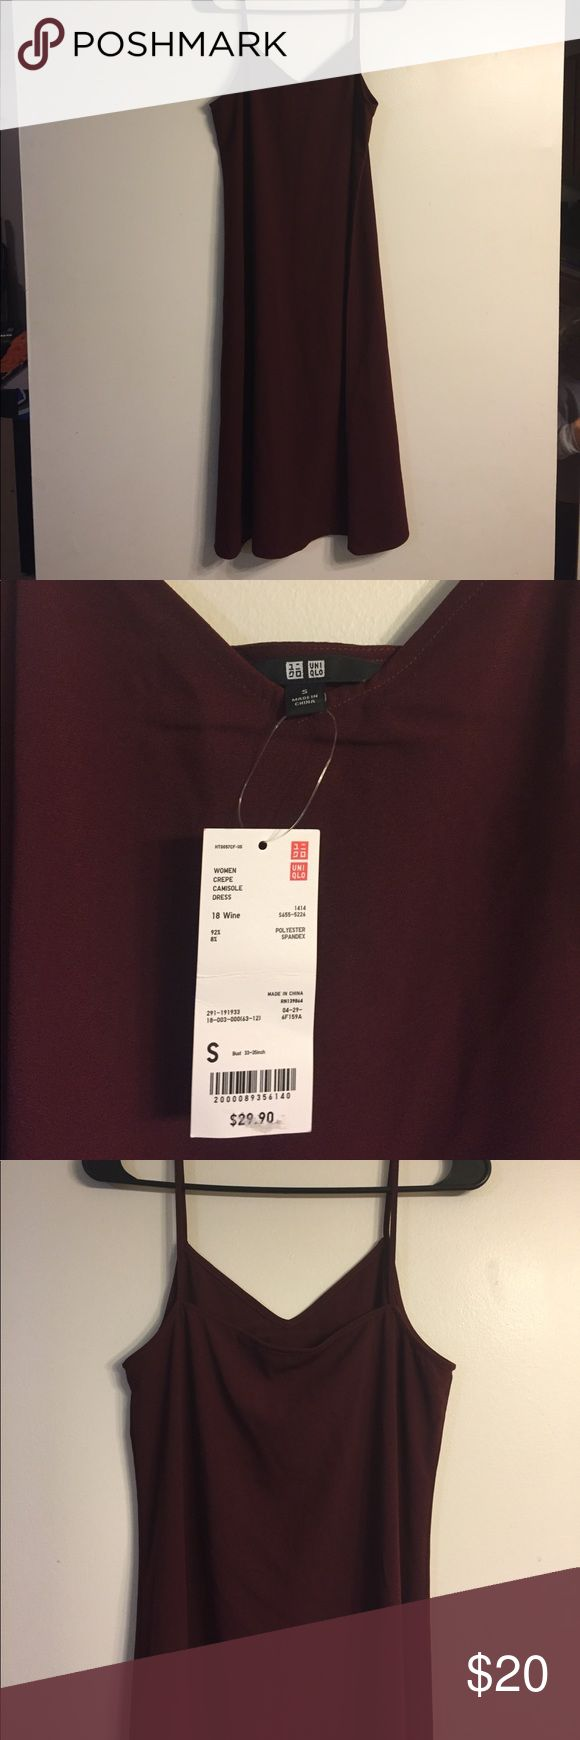 Maroon women's crepe camisole dress New with tags, never worn! 92% polyester 8% spandex, size small Uniqlo Dresses Midi